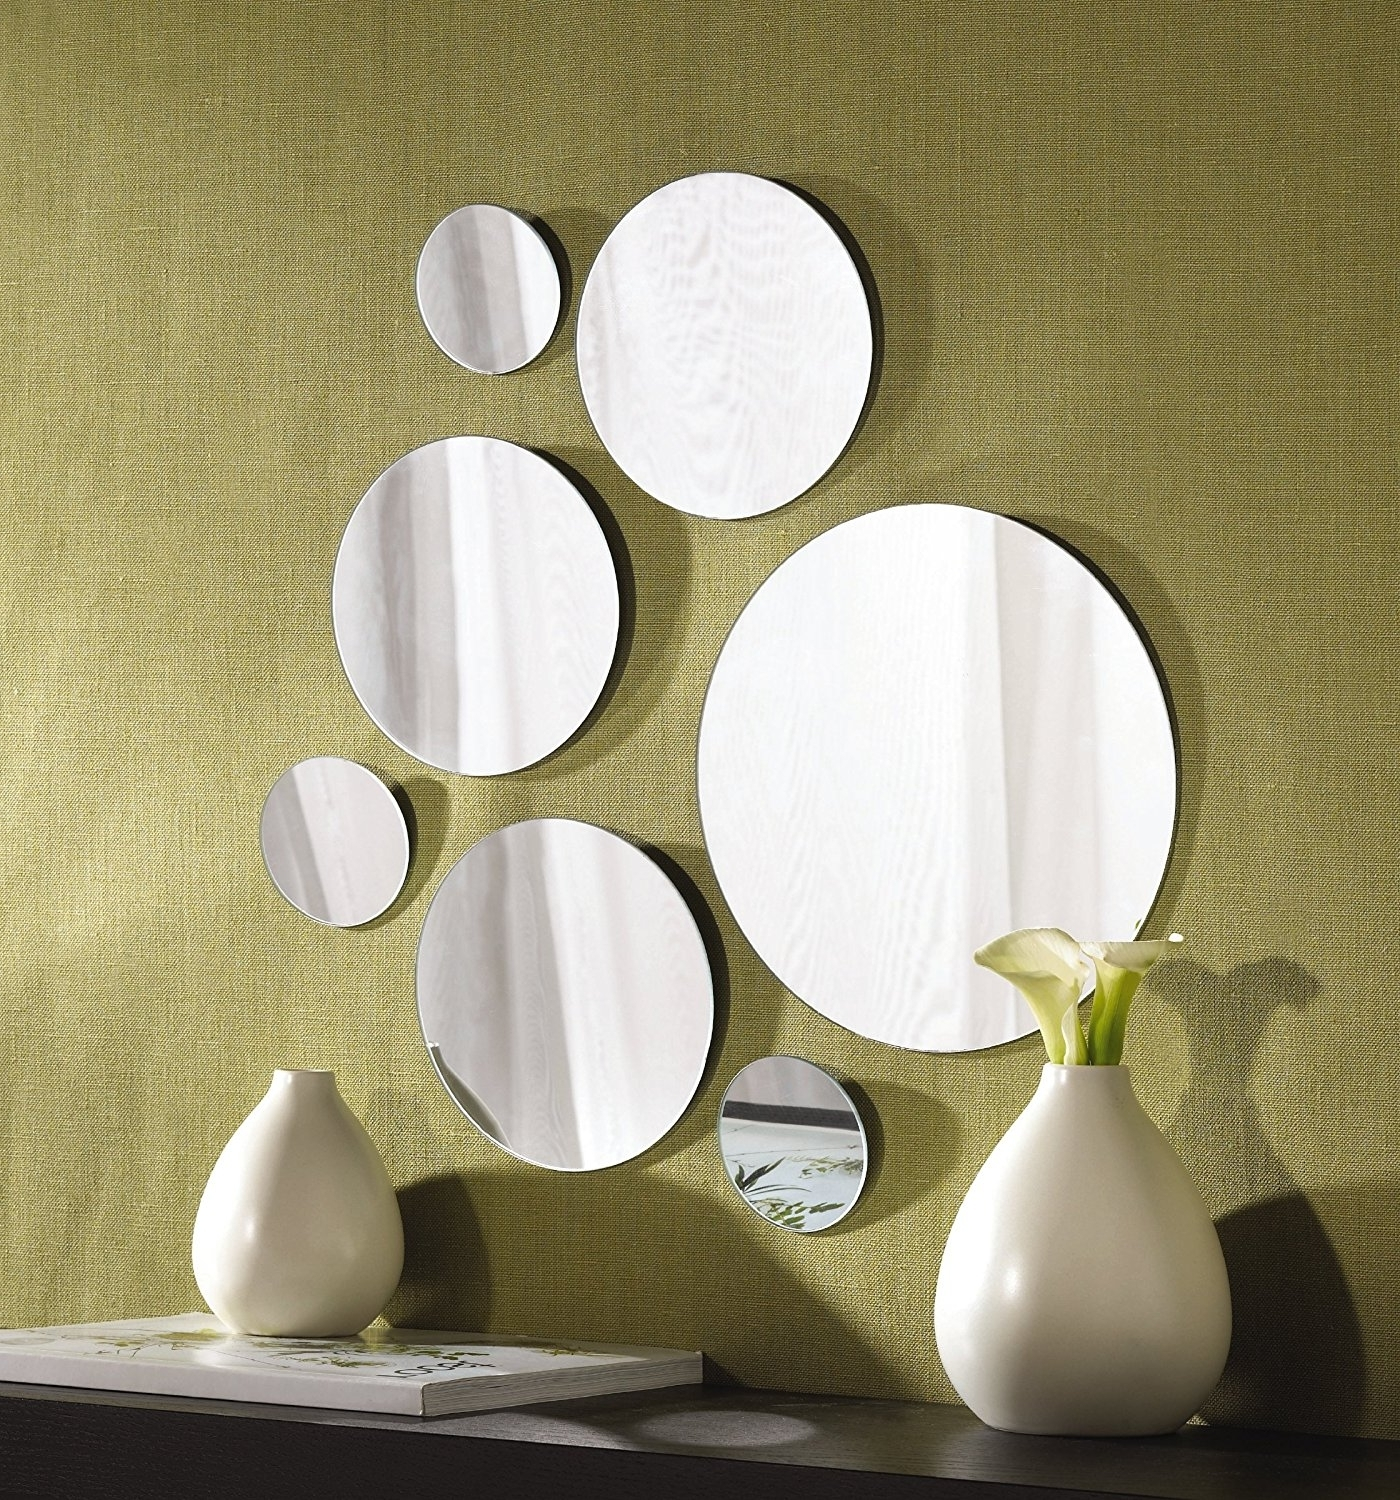 Mirror Circles Wall Art In 2017 Amazon: Elements Round Wall Mount Mirror, Set Of 7, Assorted (View 4 of 15)